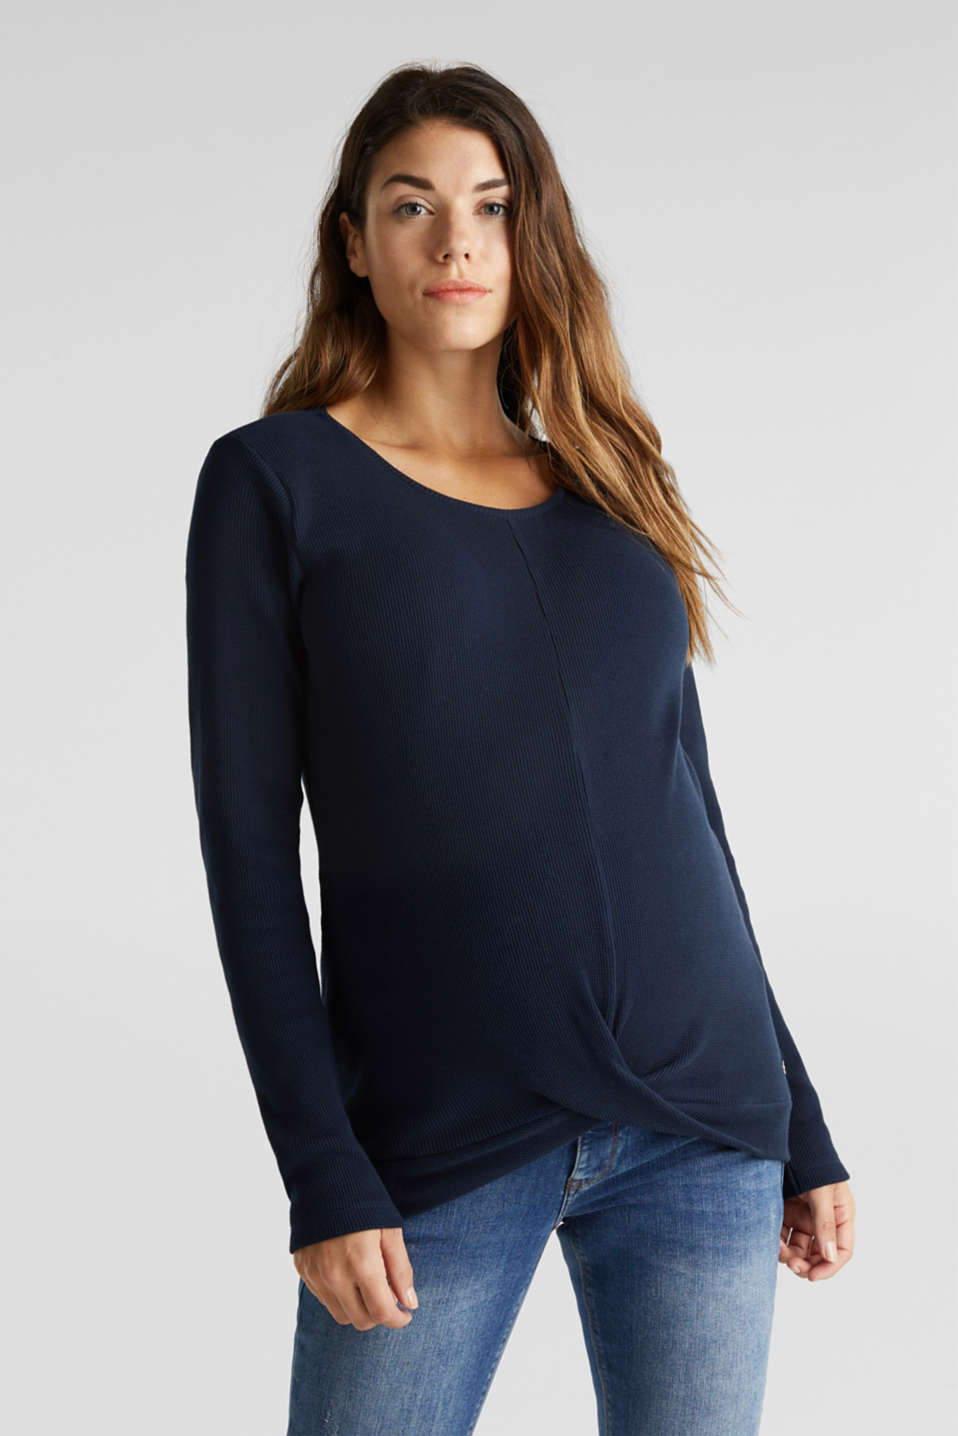 Piqué long sleeve top with a draped effect, 100% cotton, LCNIGHT BLUE, detail image number 0